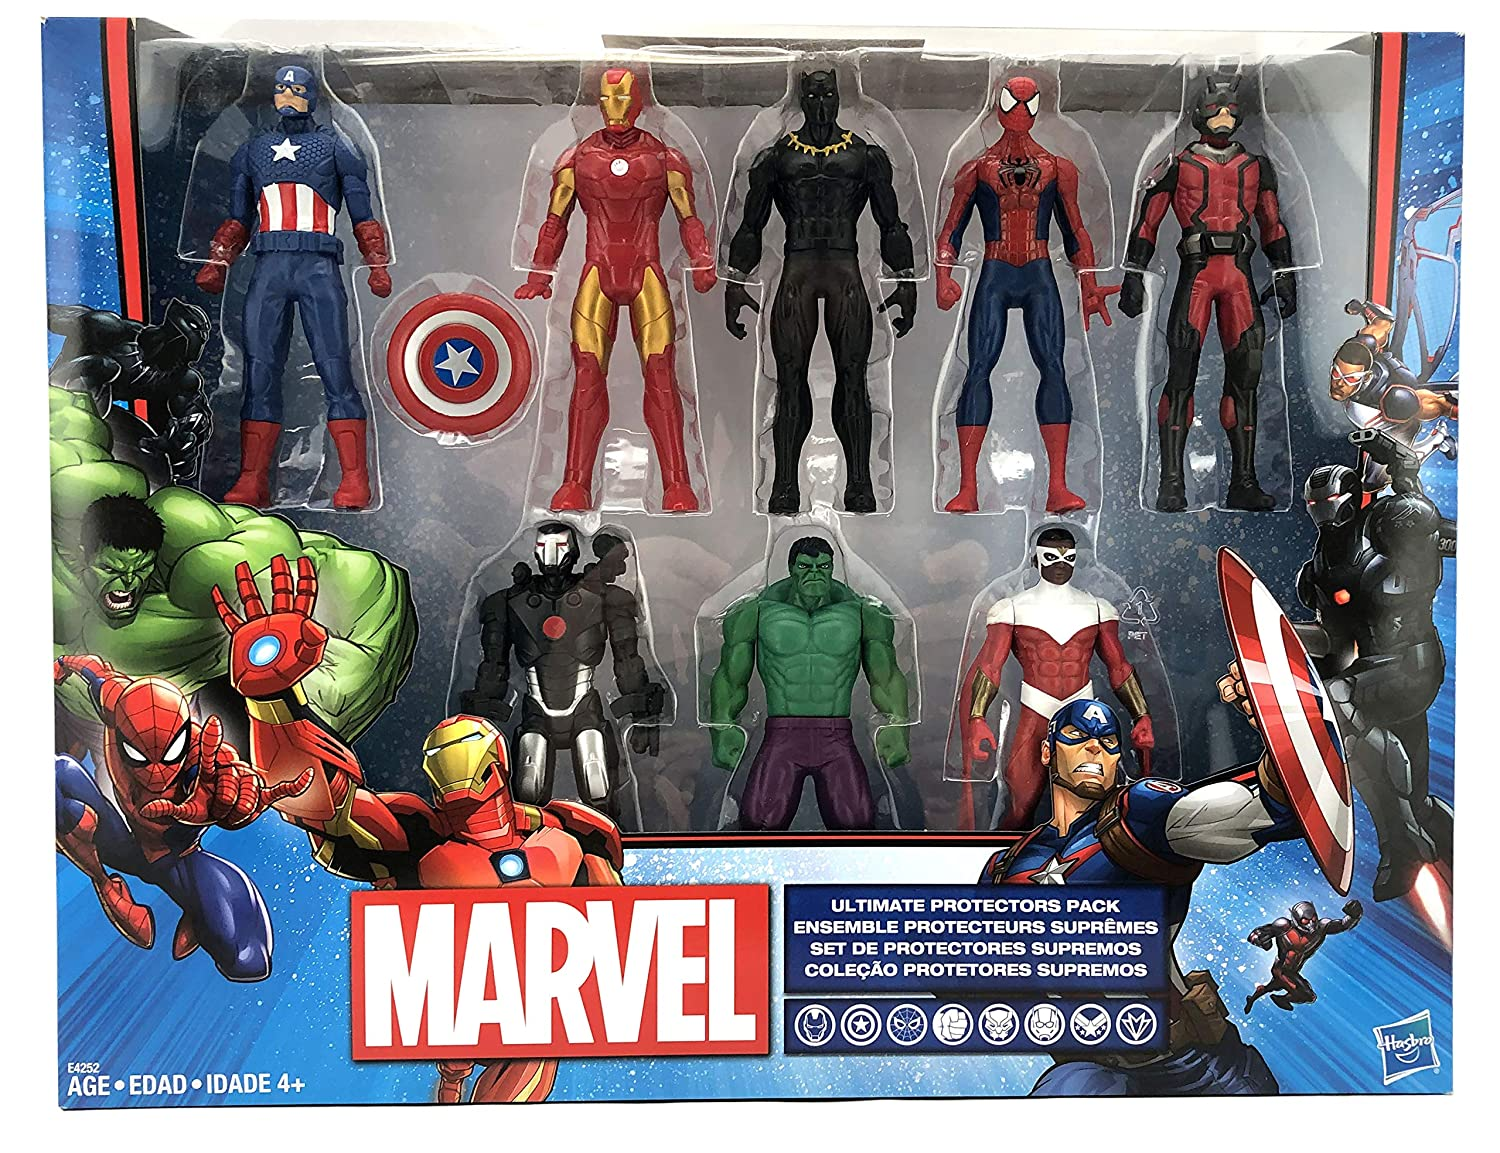 Marvels Avengers Action Figure Set | Ultimate Protector Edition | 8 Super Hero Action Figures | Hasbro